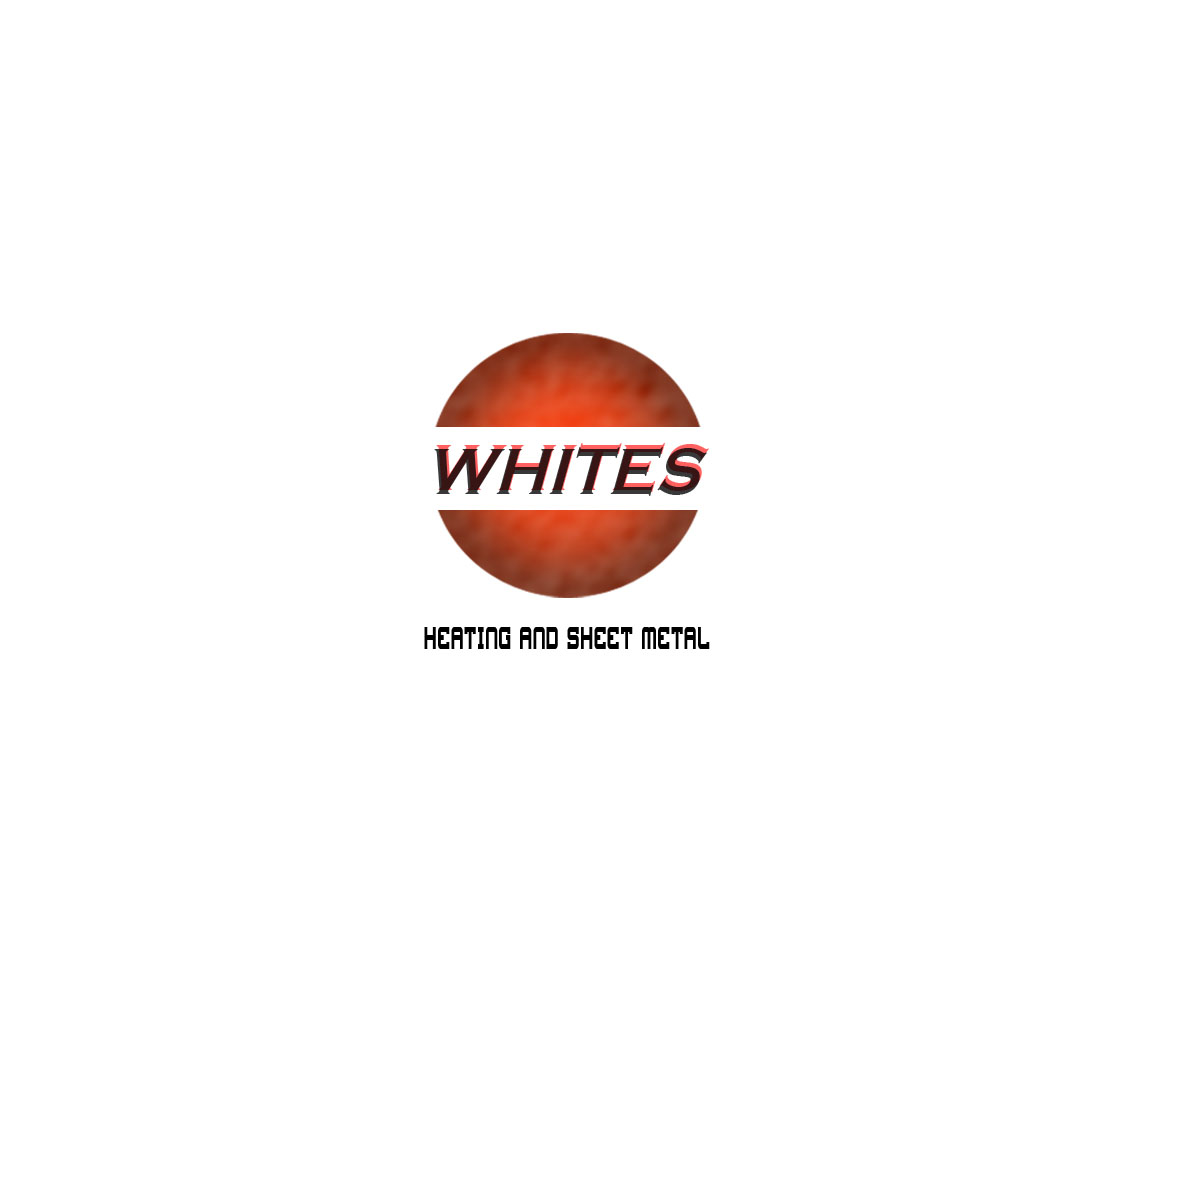 Logo Design by Moag - Entry No. 121 in the Logo Design Contest Imaginative Logo Design for White's Heating and Sheet Metal.